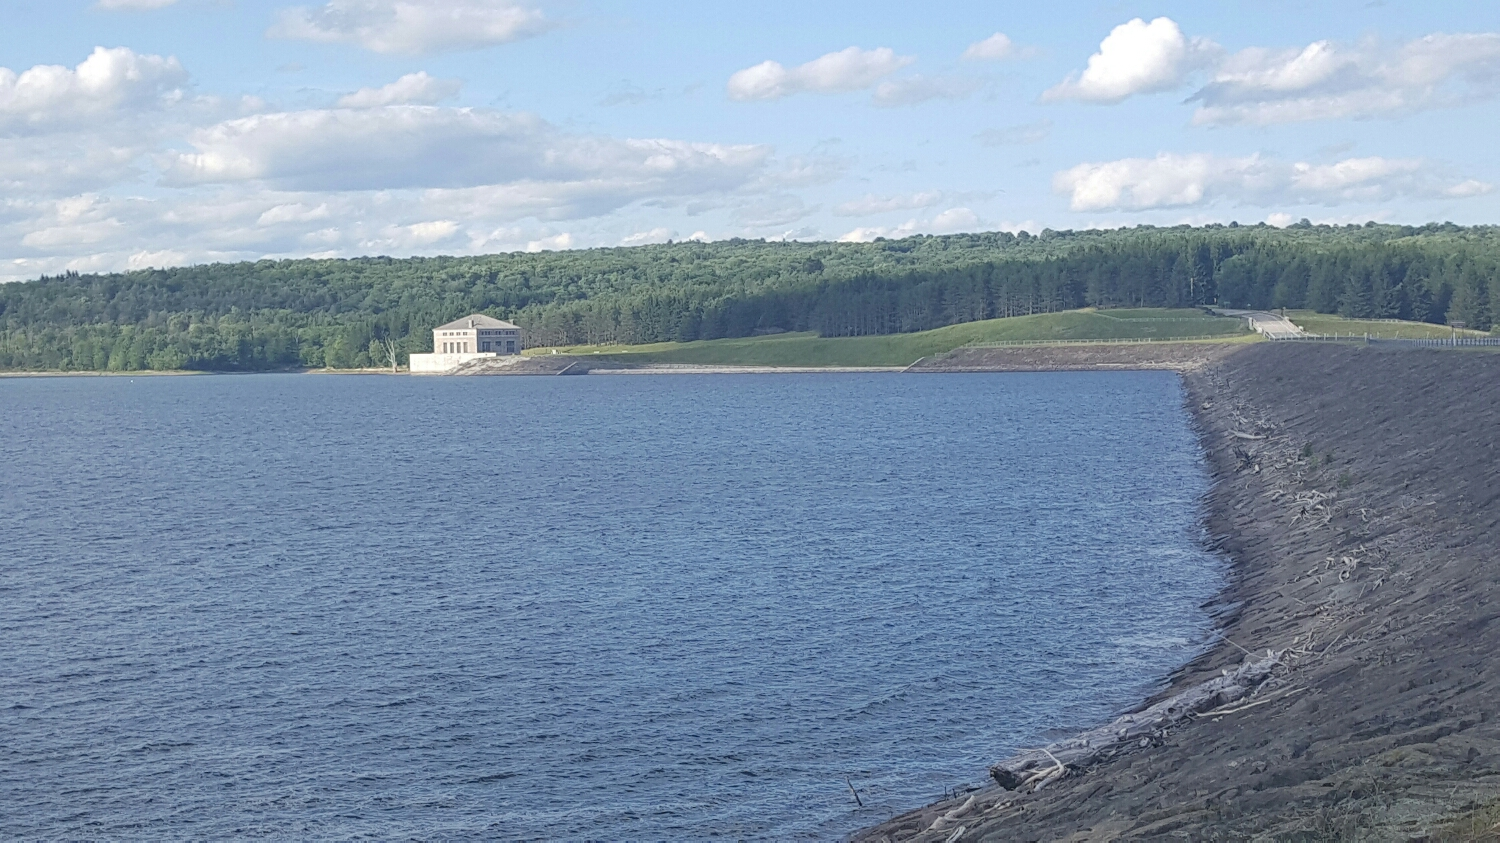 One of the reservoirs that supplies water to NYC